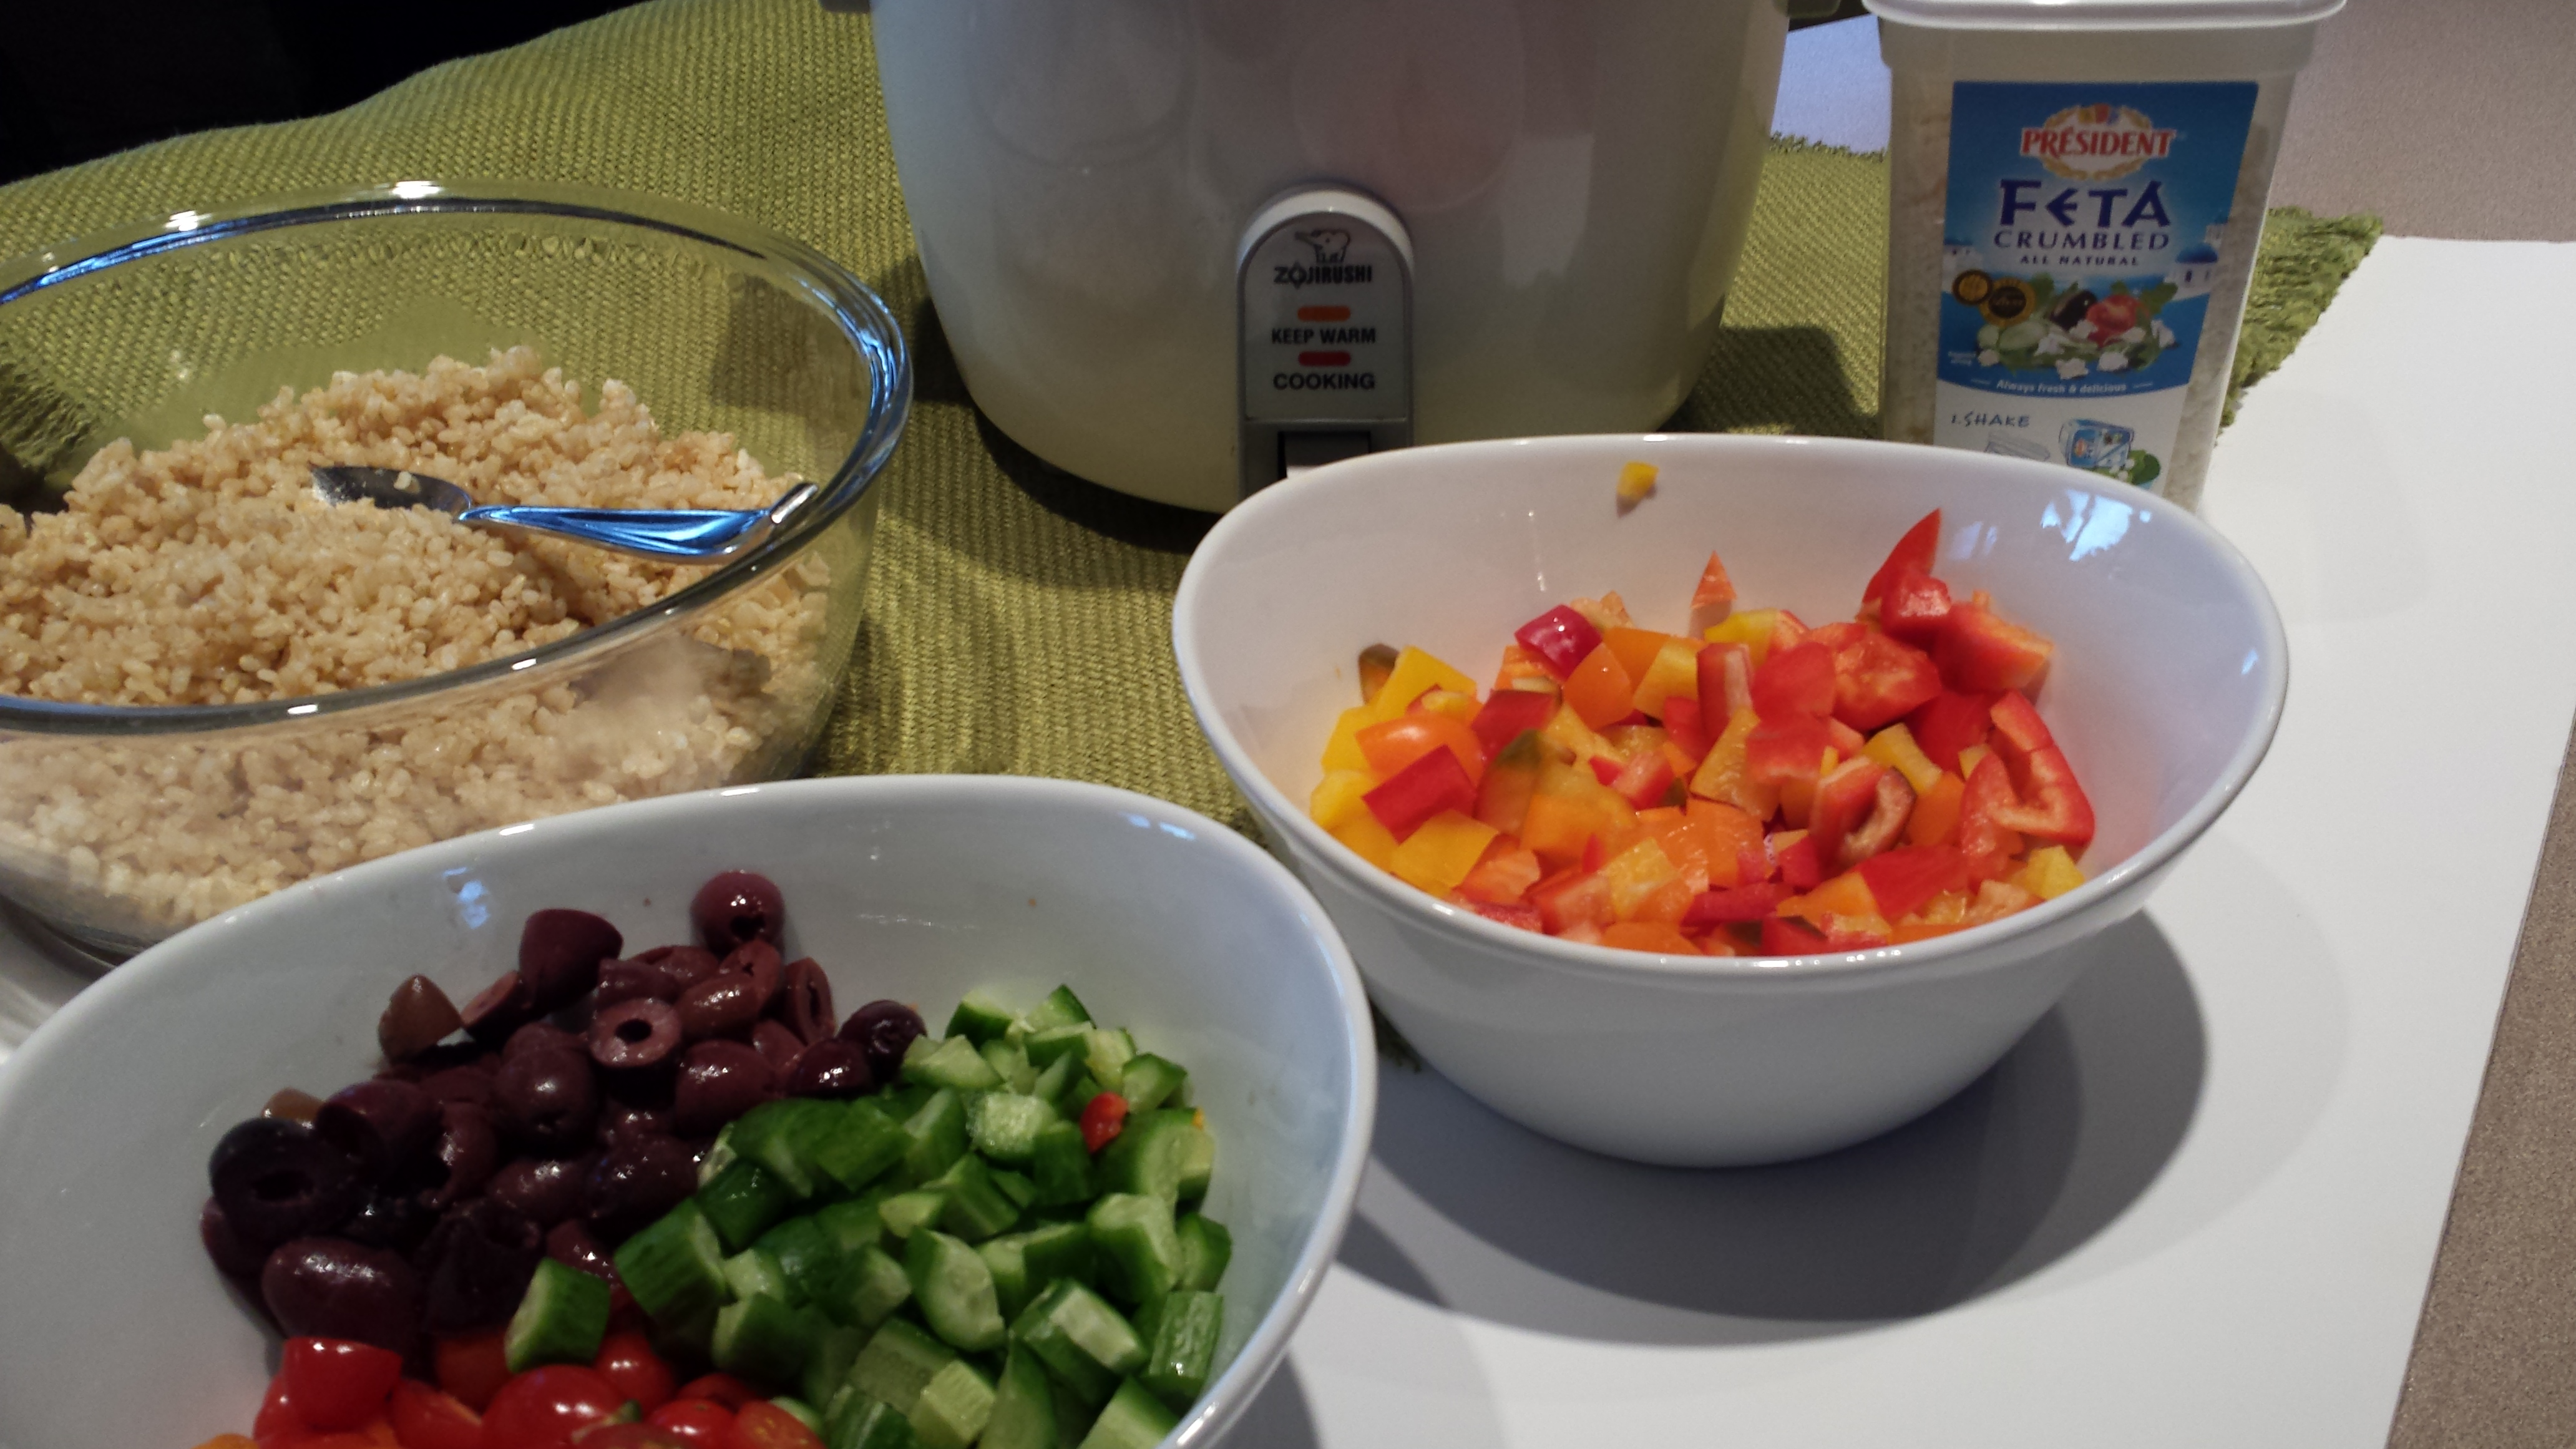 Deborah Enos's 10 Minute Dinners Greek Brown Rice Salad